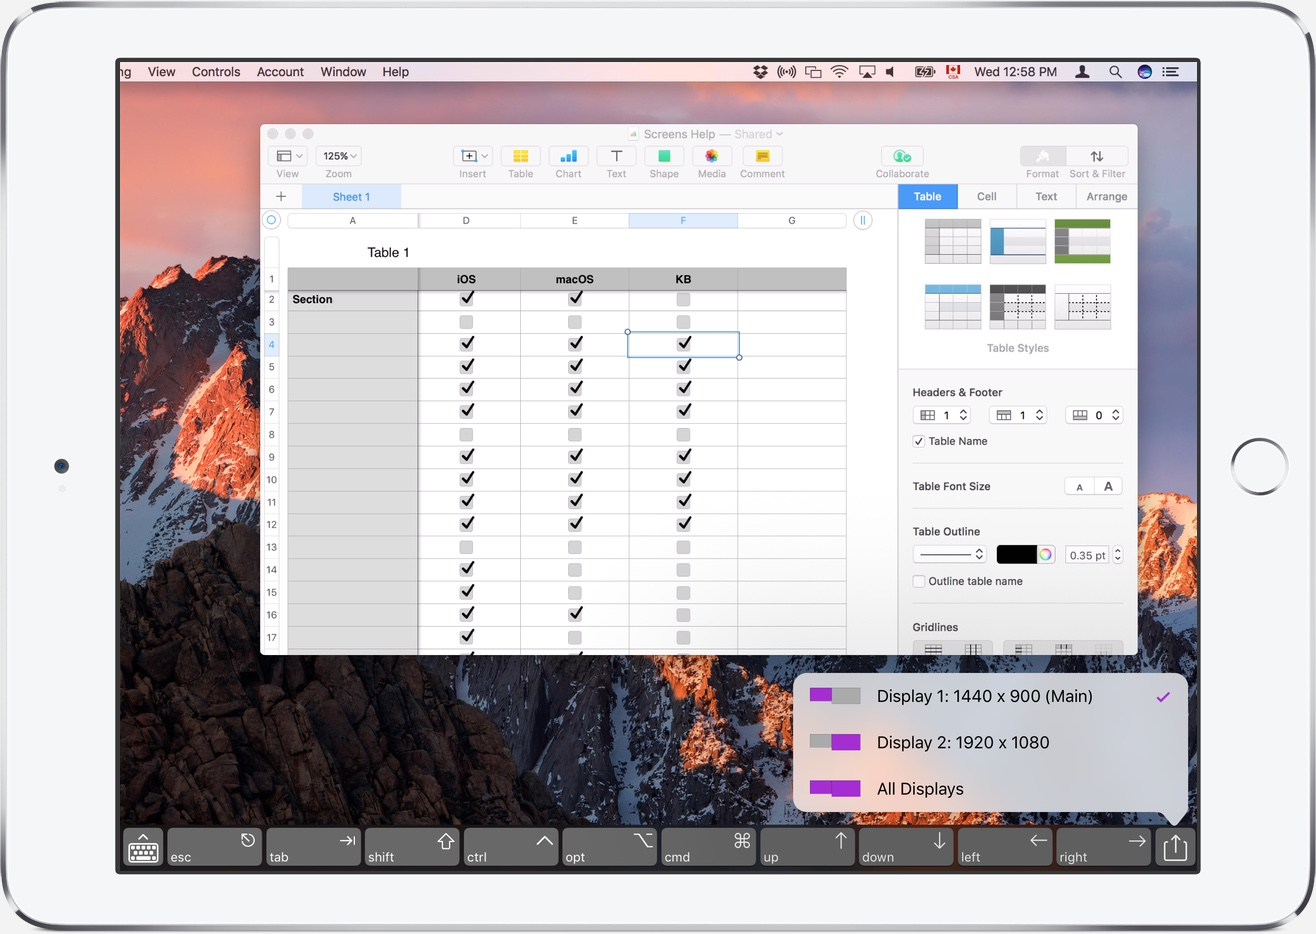 Screens for iOS - Control Any Computer Remotely from your